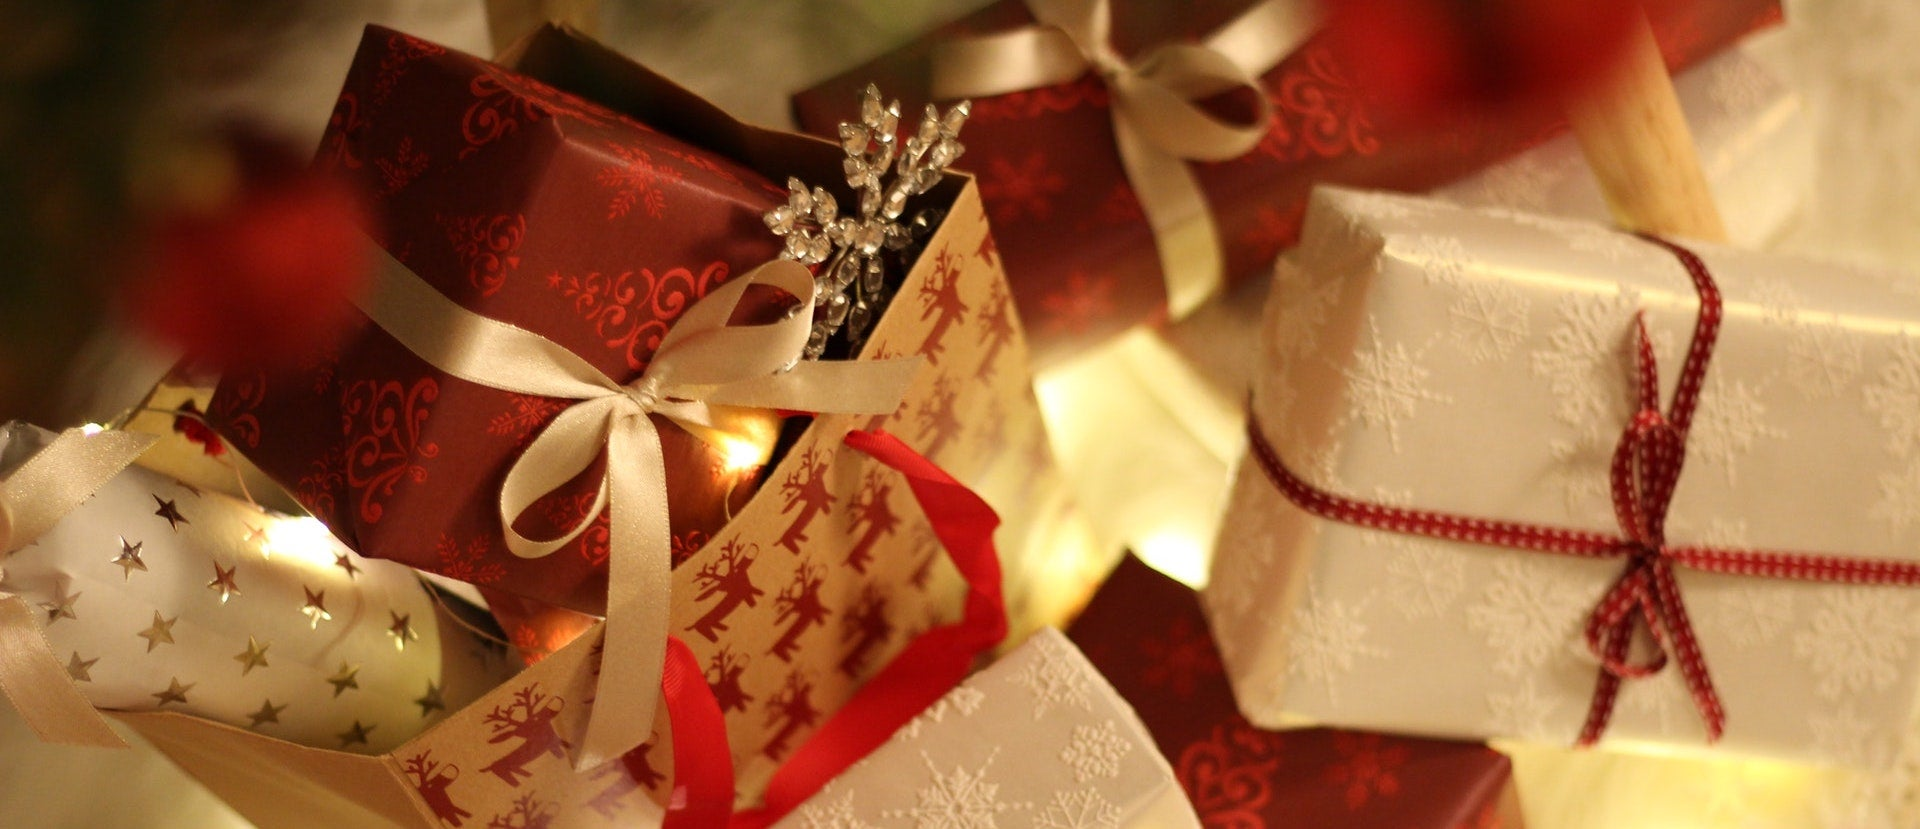 Close up of small wrapped Christmas presents